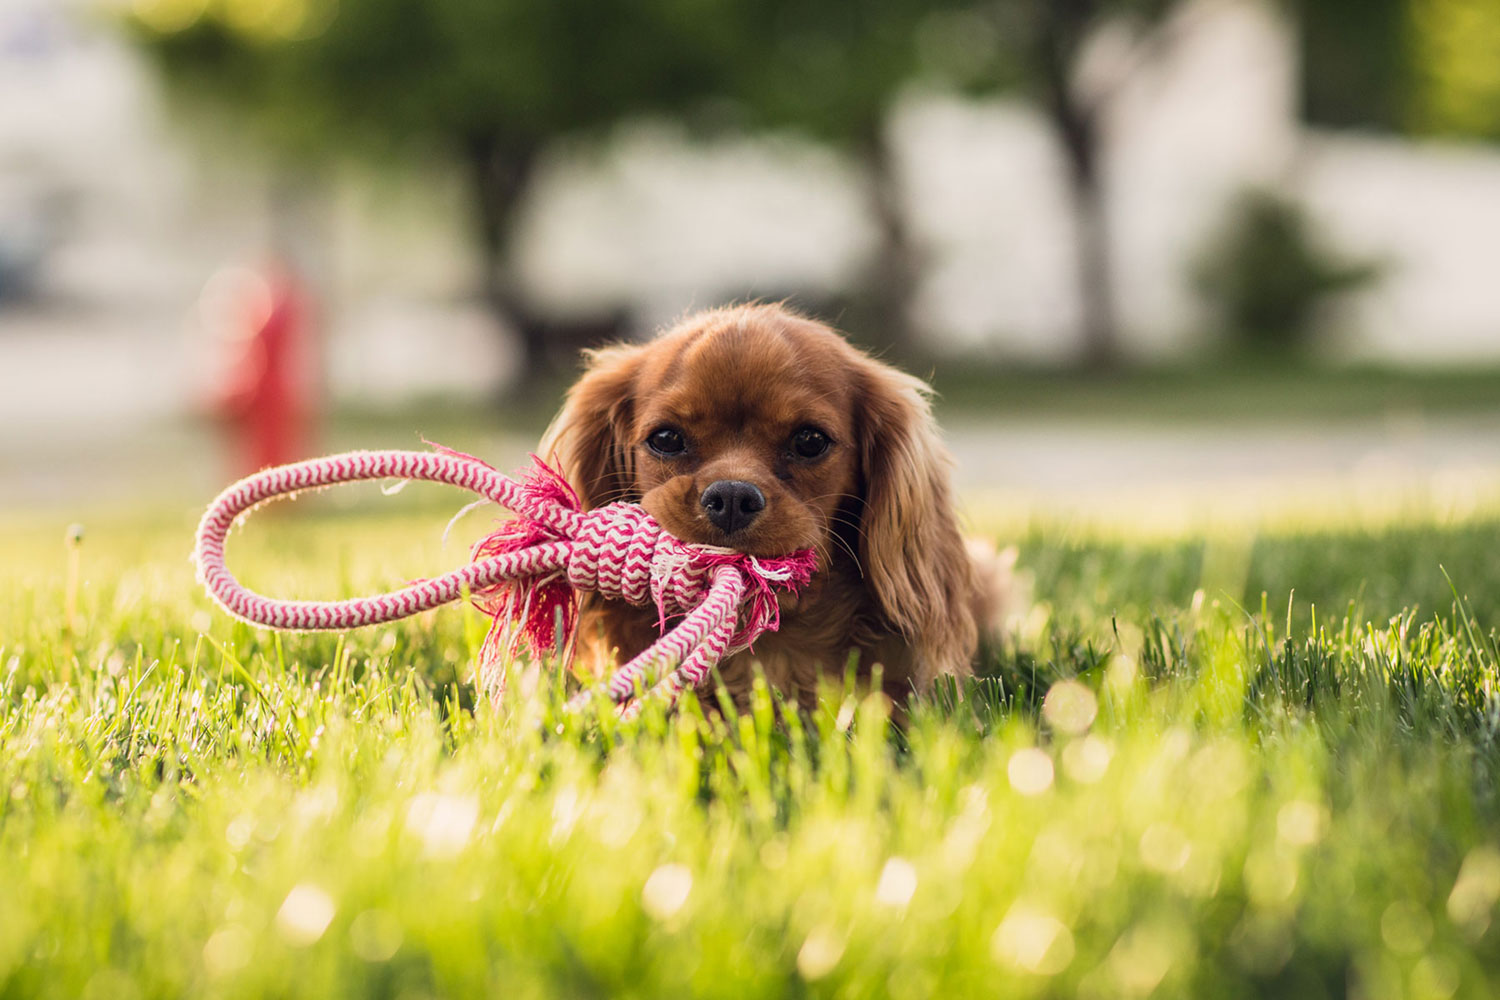 What can the owner do to motivate his dog when doing activities?